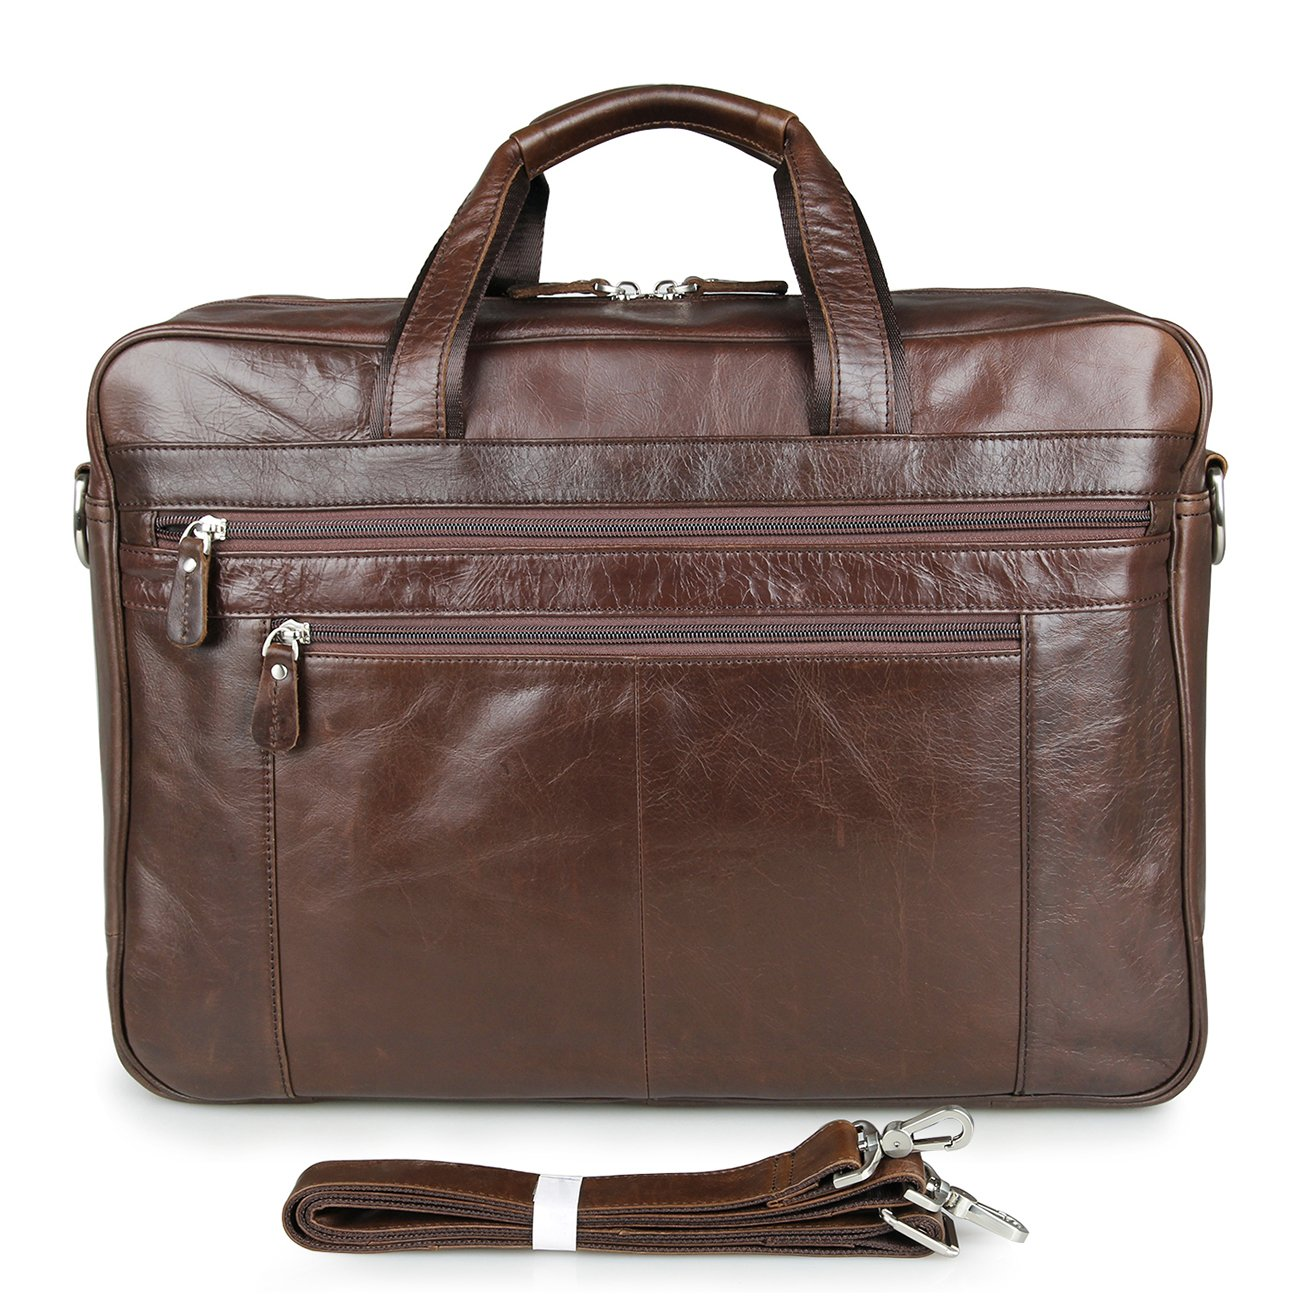 Polare Real Soft Nappa Leather 17 Laptop Case Professional Briefcase Business Bag For Men (coffee) by Polare